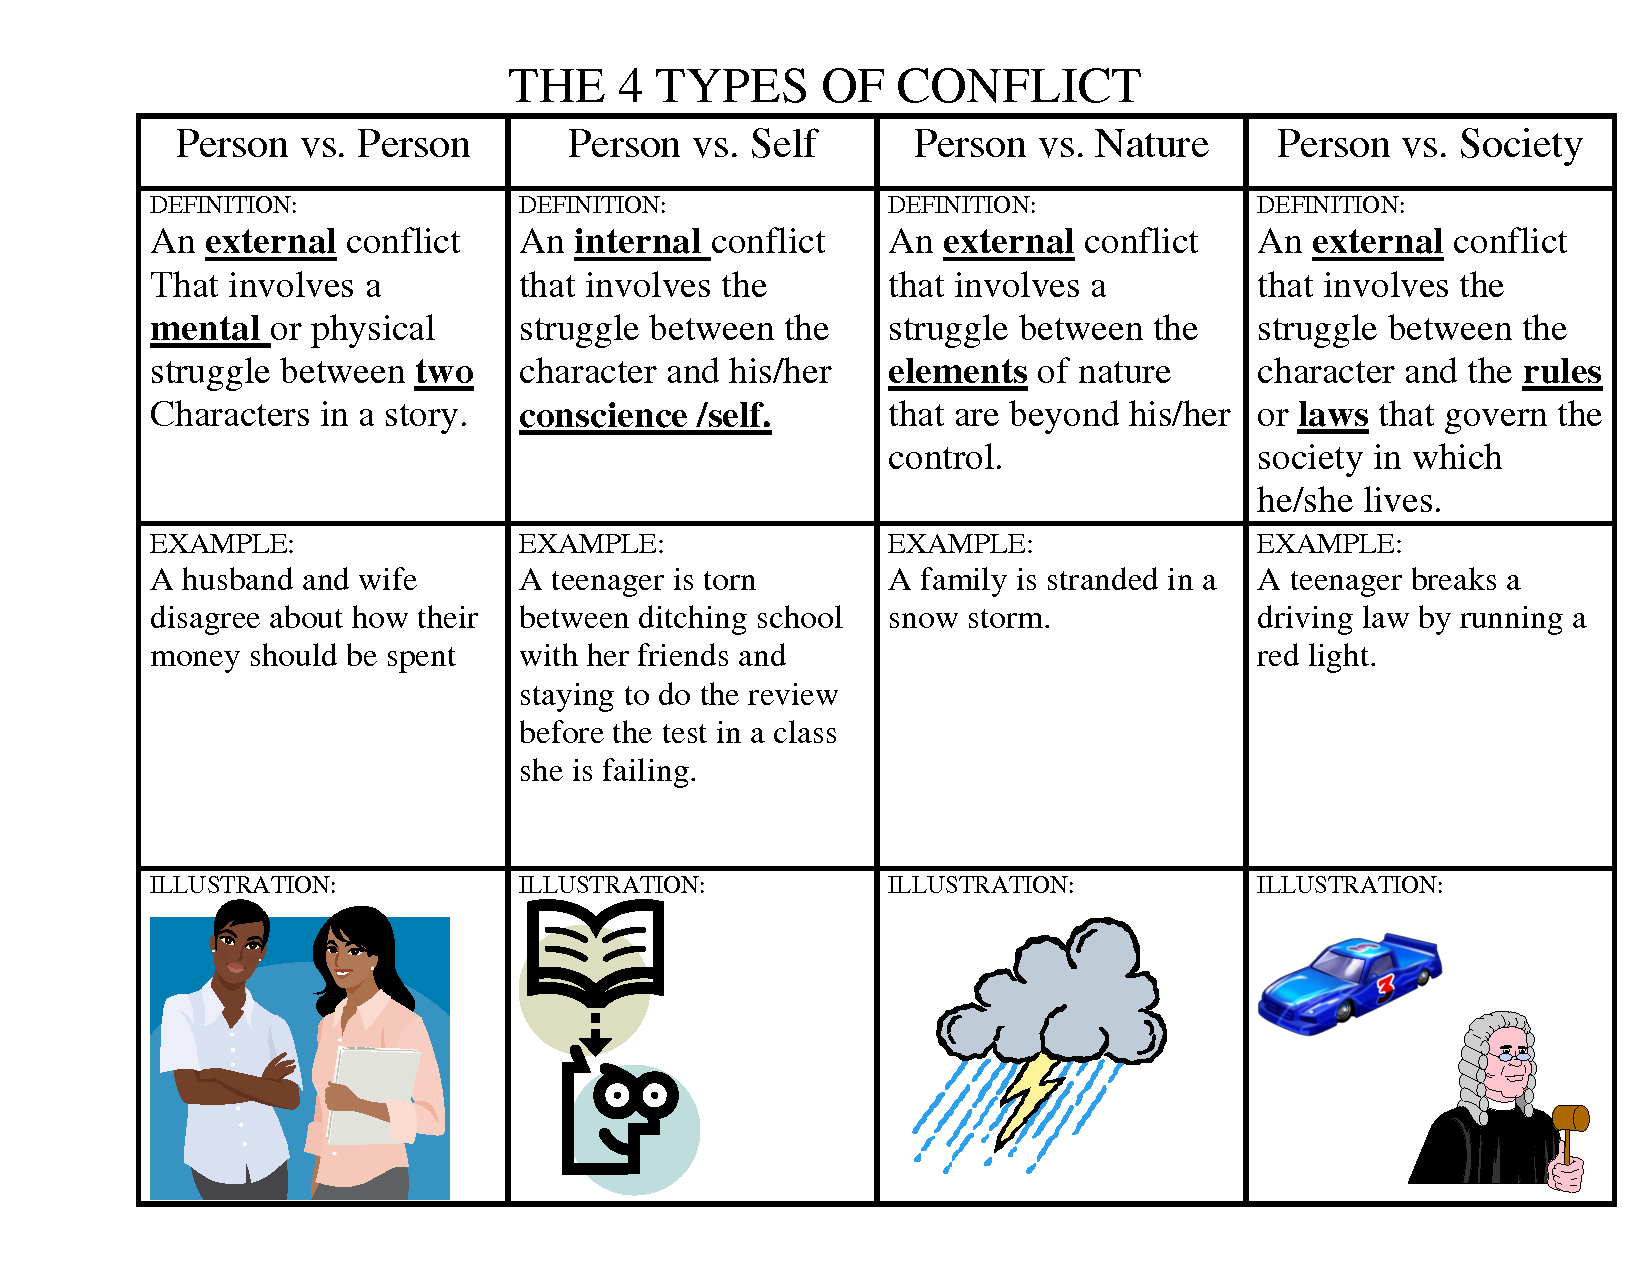 medium resolution of 2010 THE 4 TYPES OF CONFLICT GRAPHIC ORGANIZER   Types of conflict